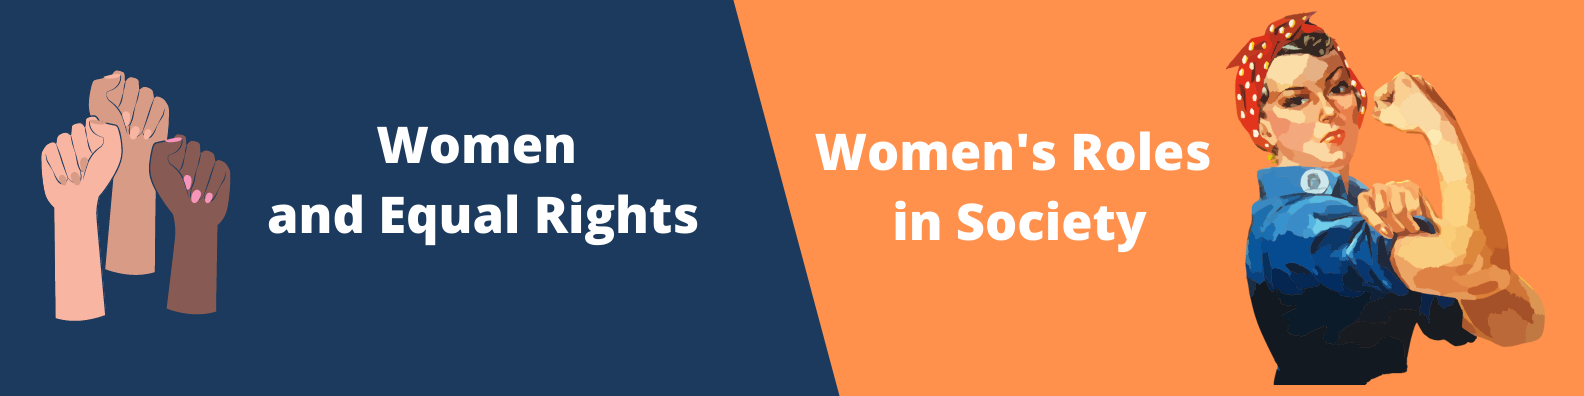 Women and Equal Rights, Women's roles in society - banner